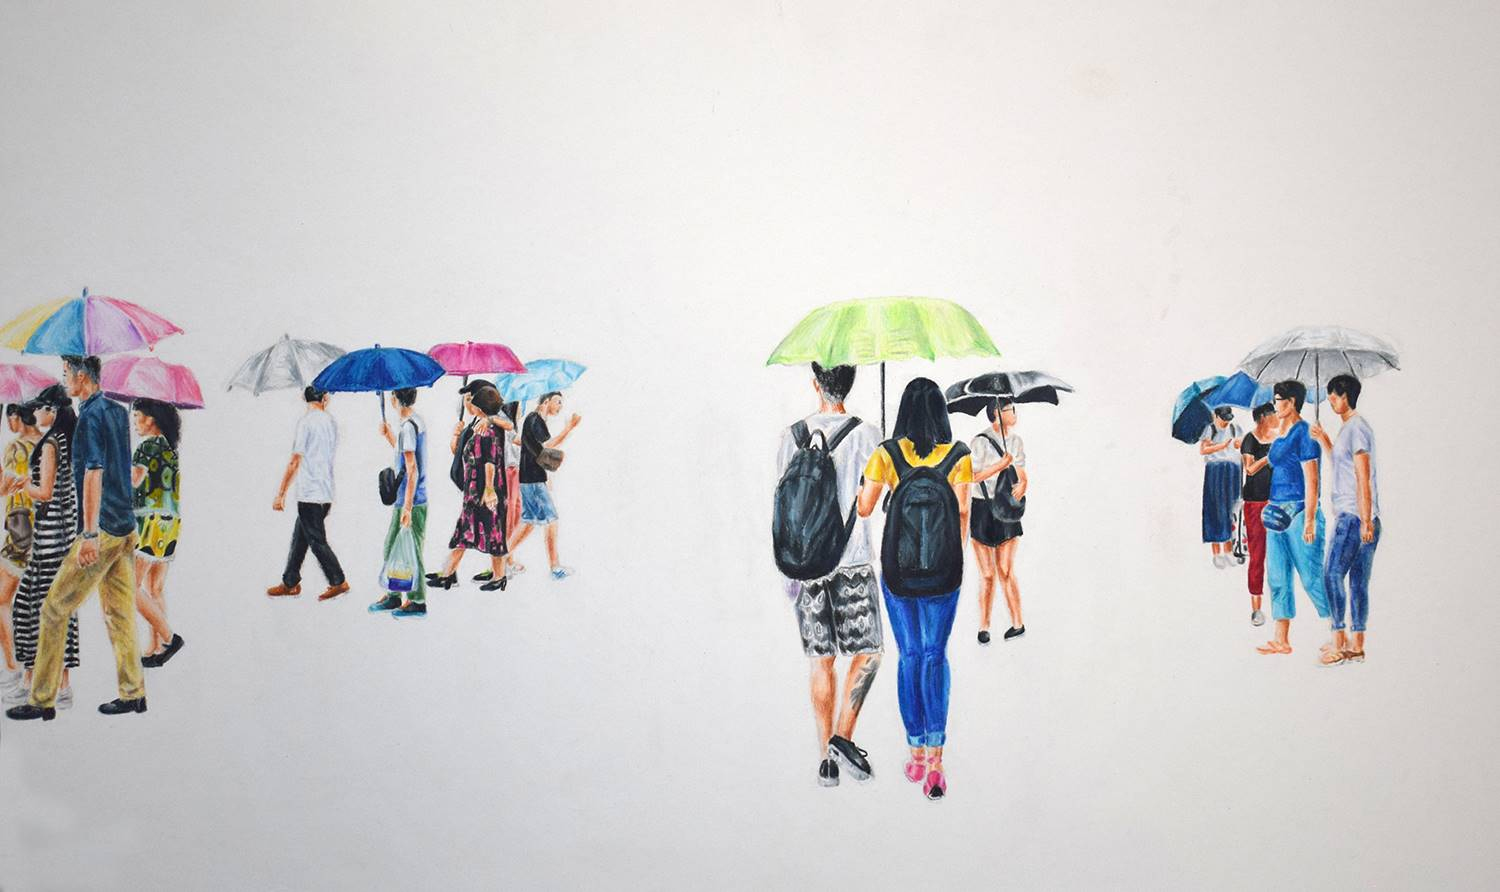 Groups of young adults walking and holding different colored umbrellas against a white background.